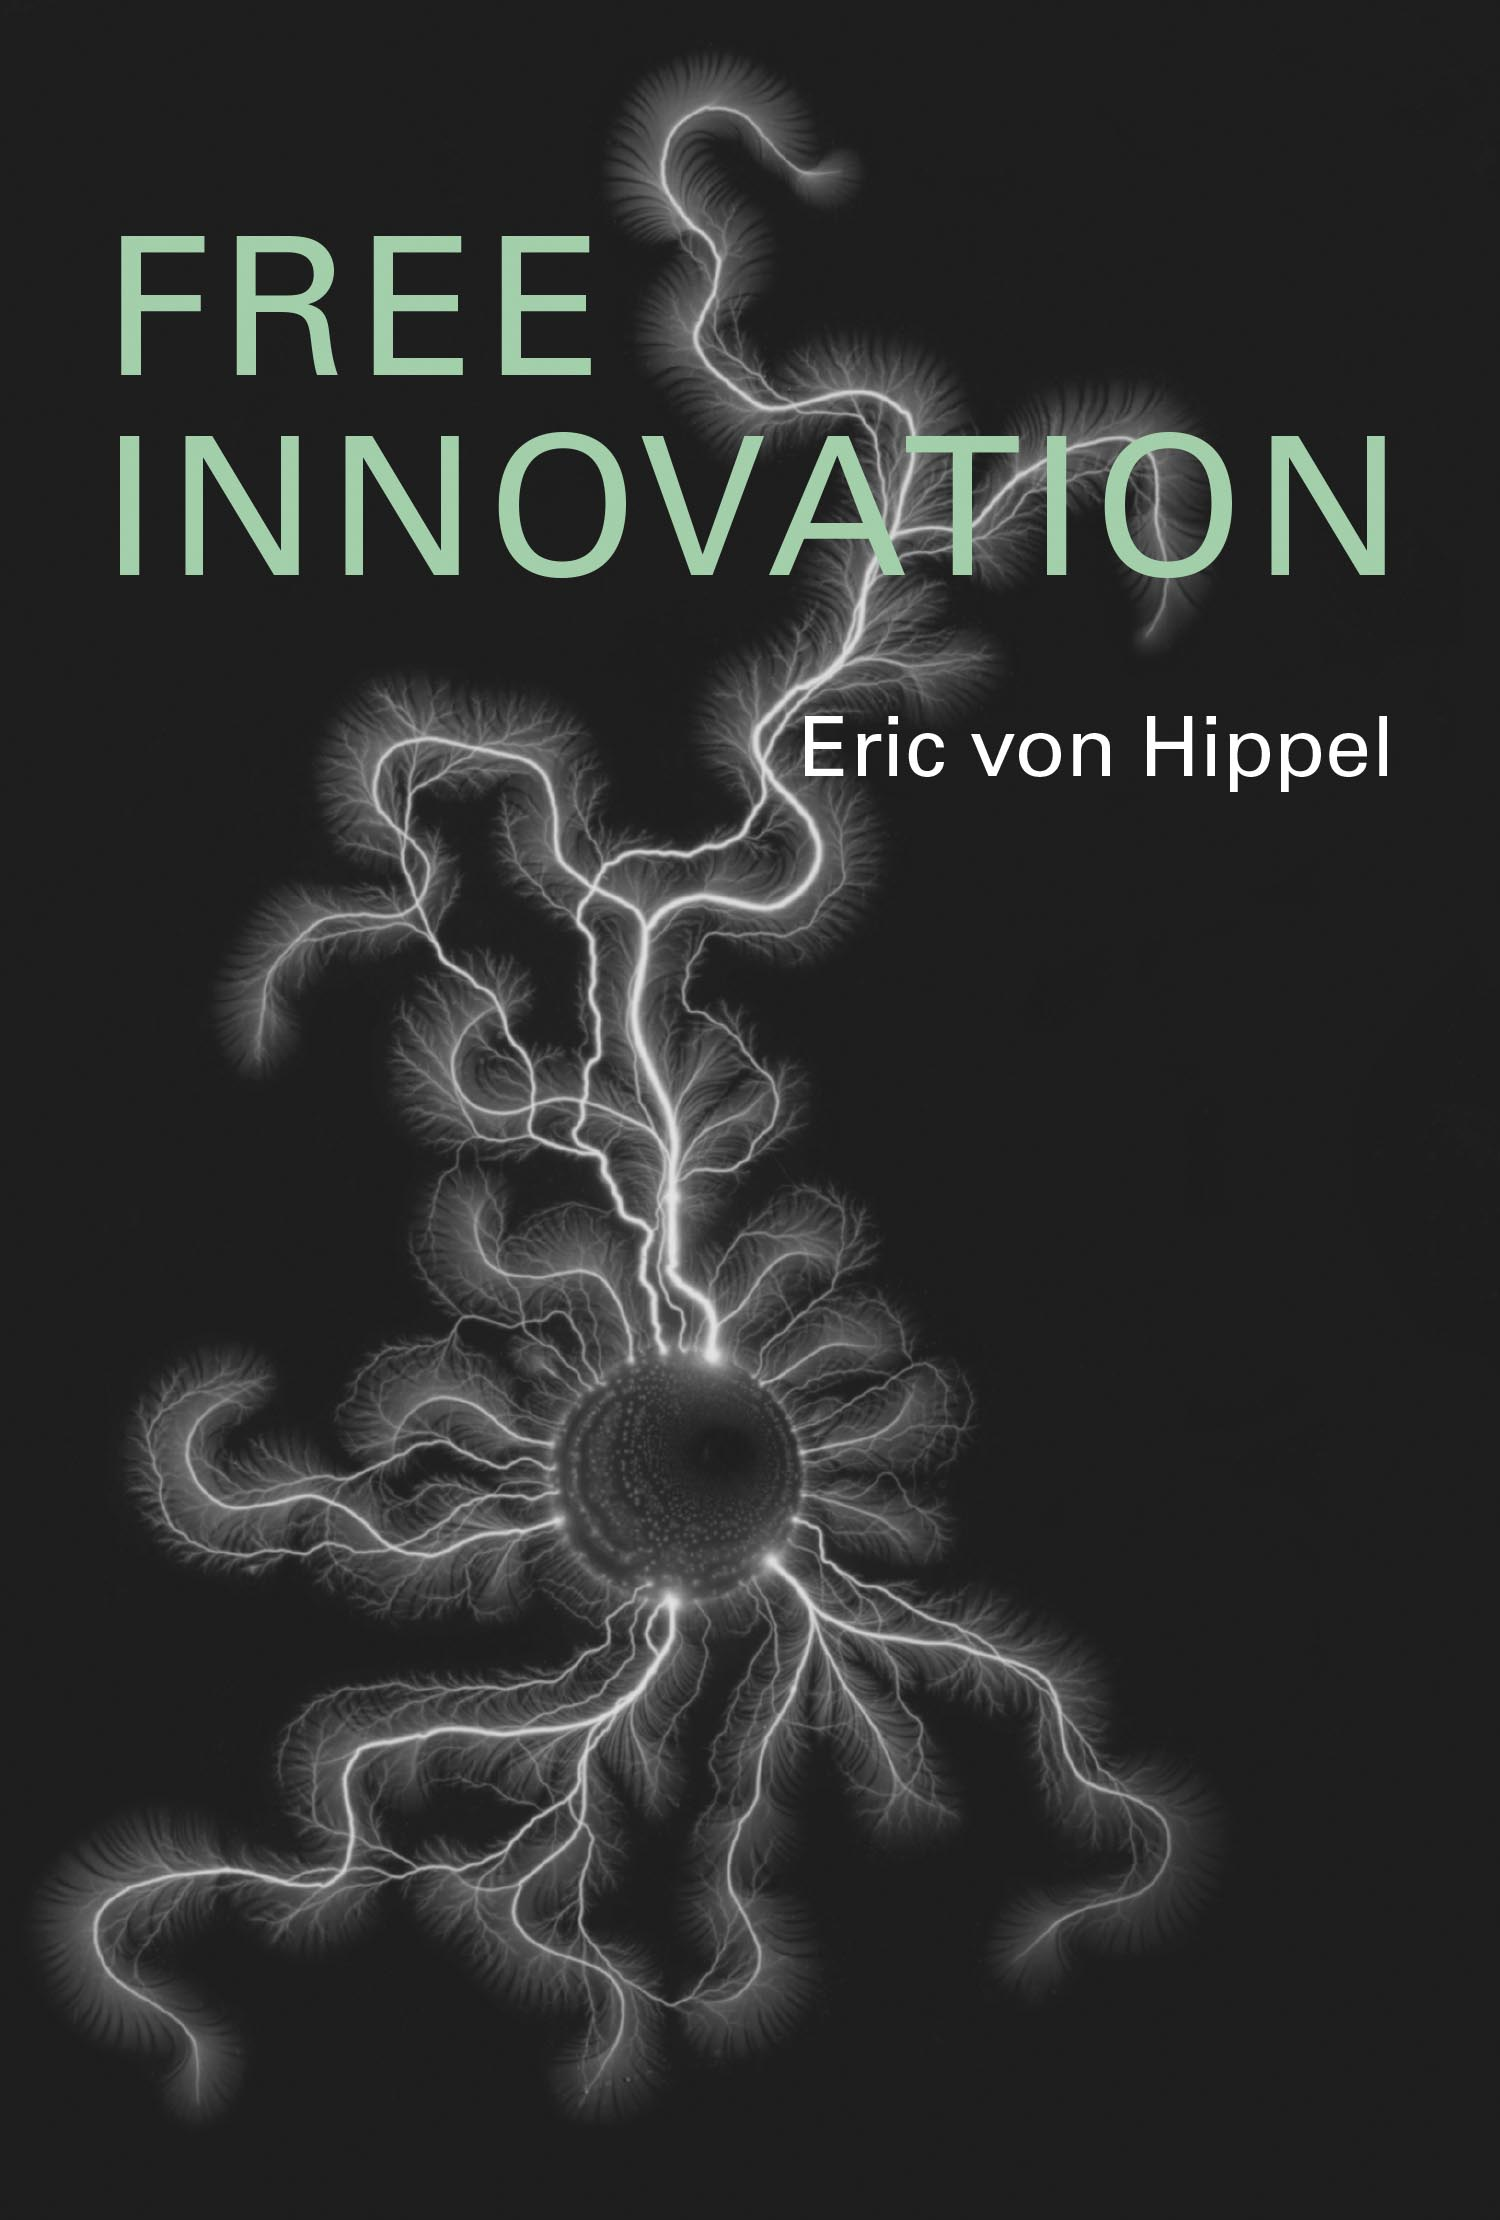 free-innovation-book-cover.jpg